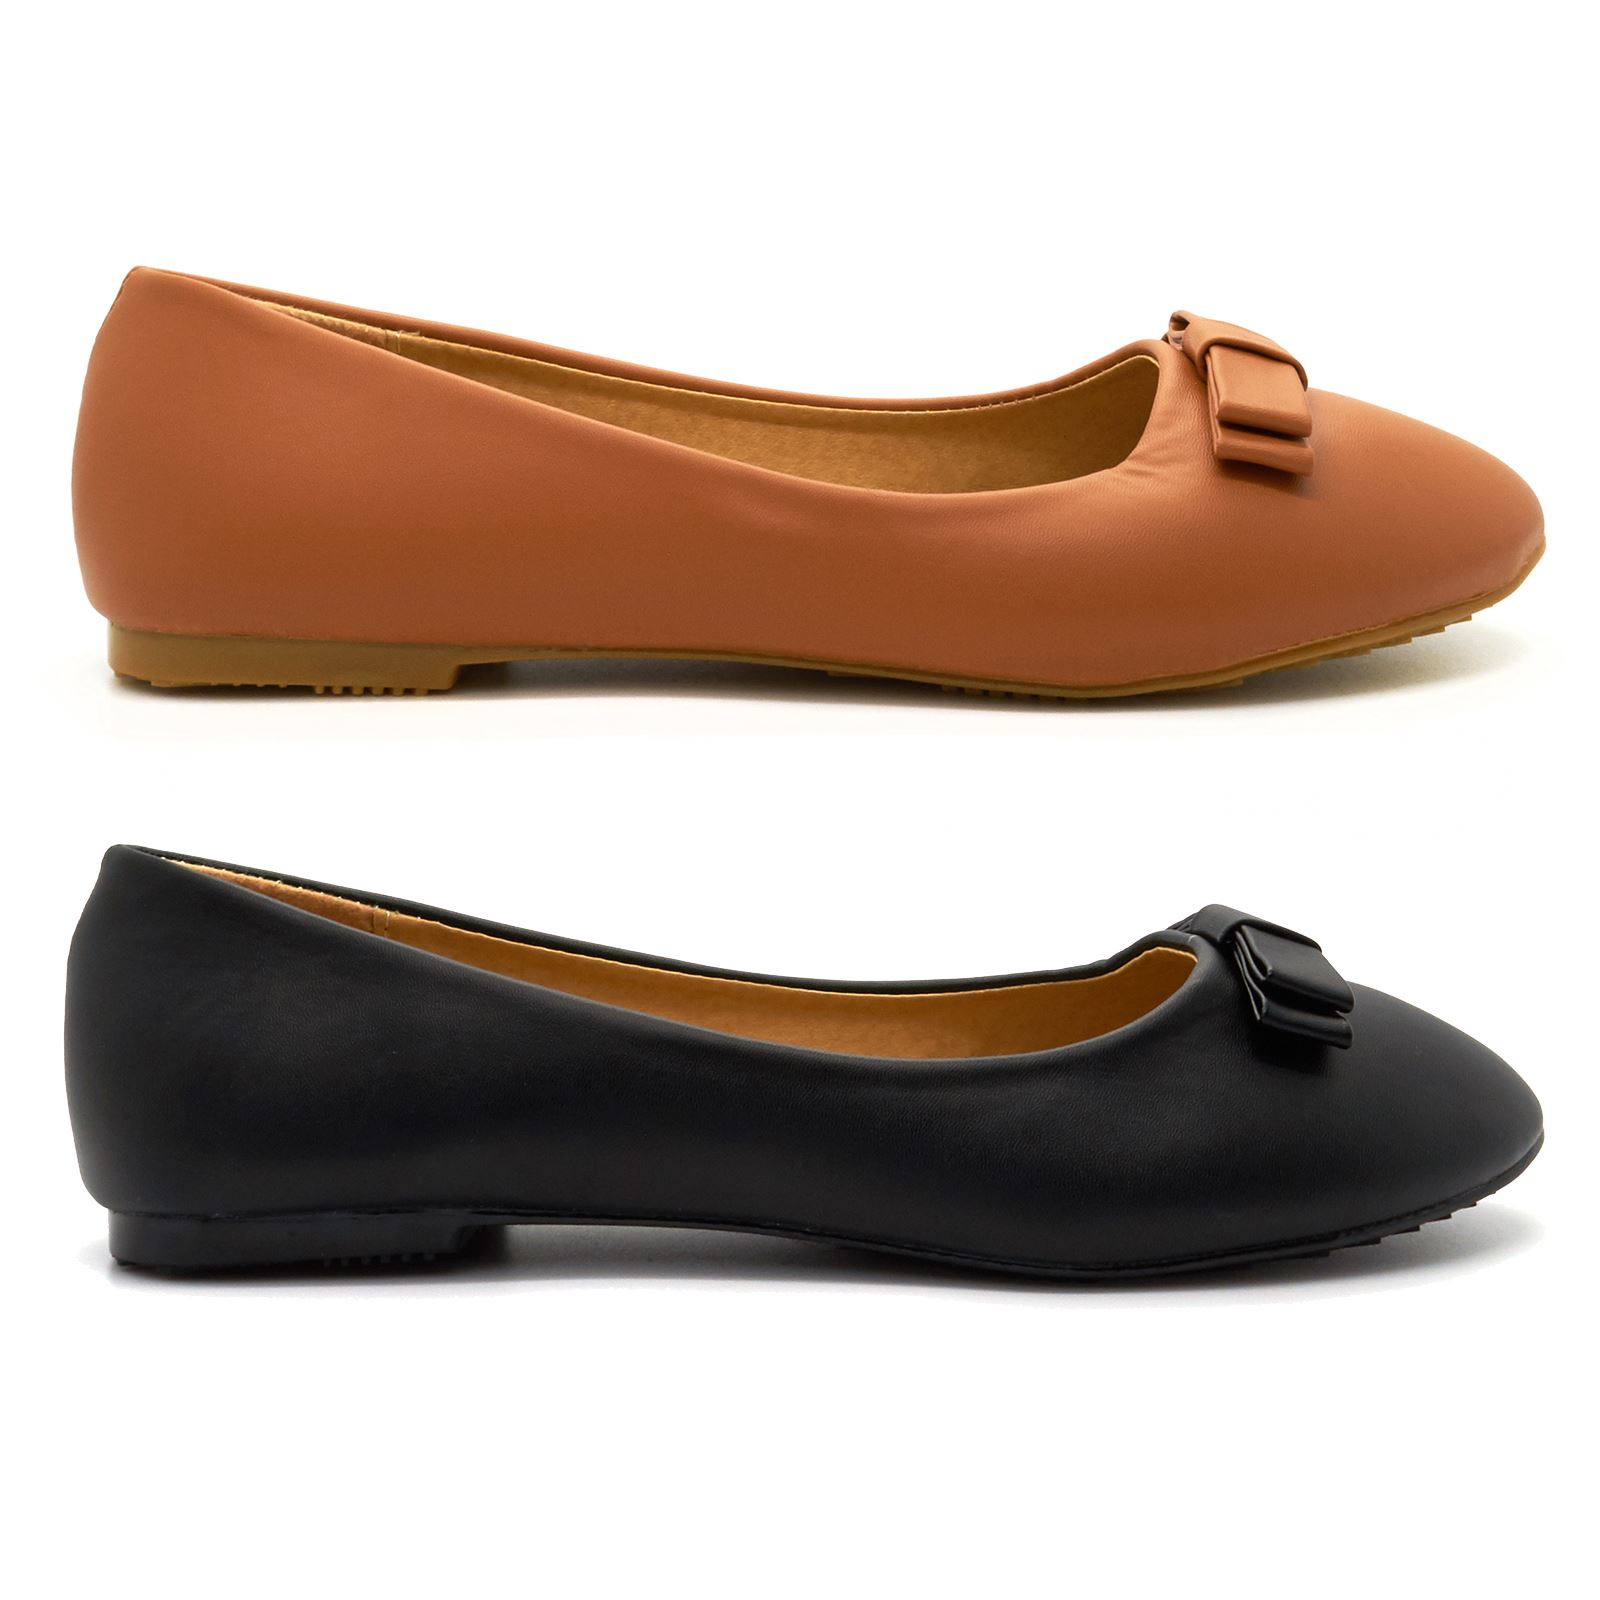 New Womens Plain Ballet Pumps Ladies Flat Ballerina Dolly Shoes Work Size UK 3-8